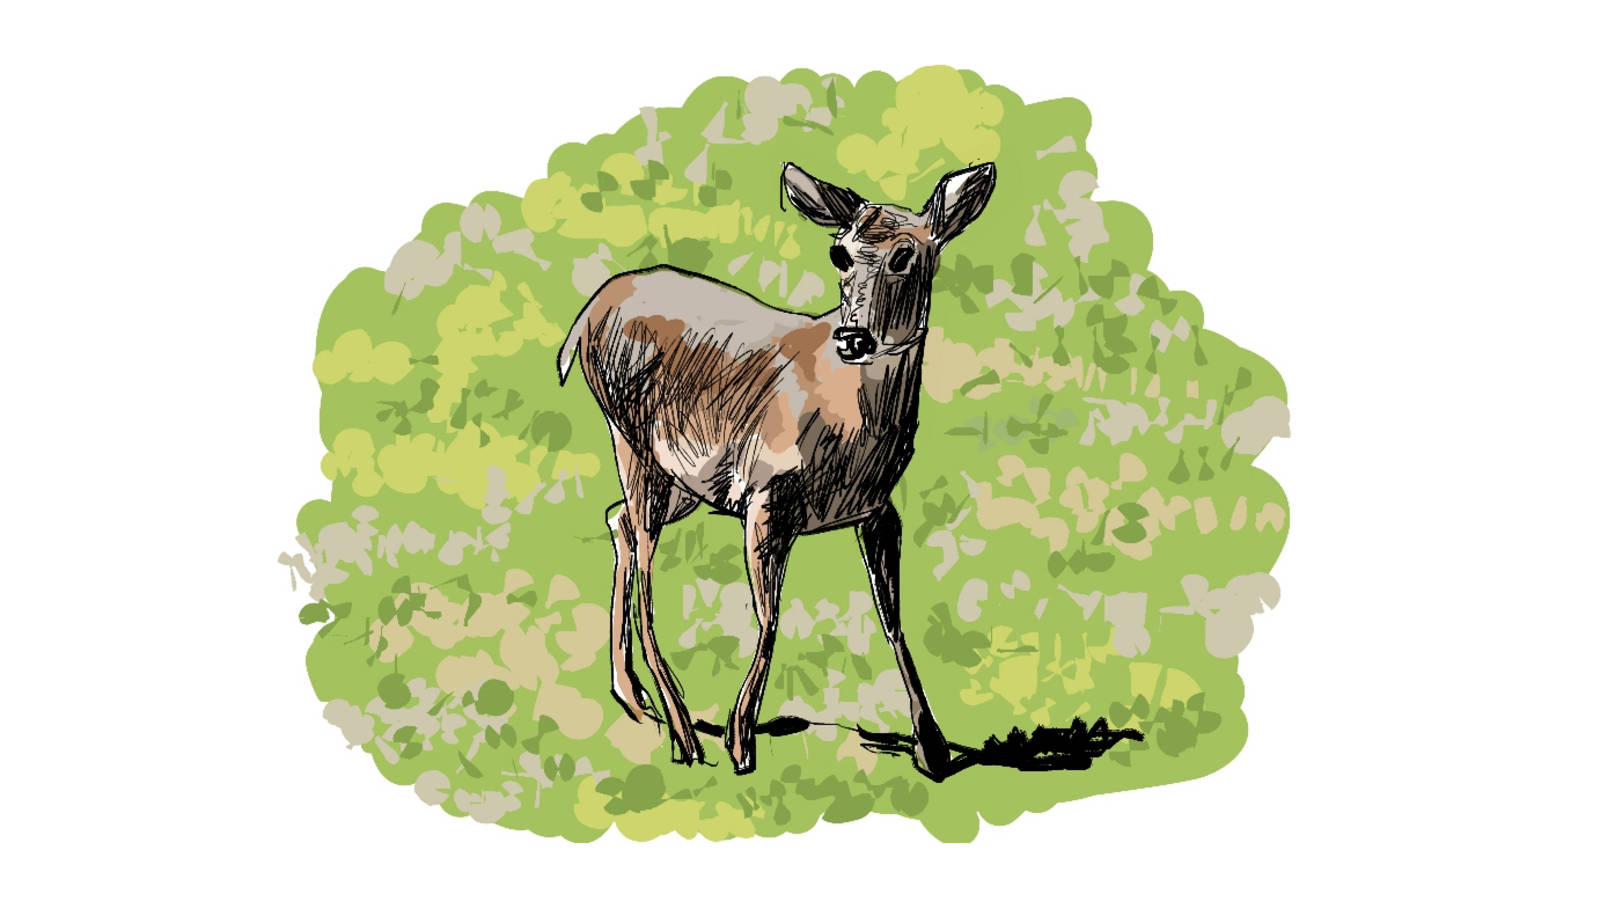 <p>The park's broad valleys are home to a variety of wildlife, such as the deer pictured here. Big lesson: Elk are considerably larger than deer. Lesson #2: It's hard to run fast carrying a sketchbook.</p>